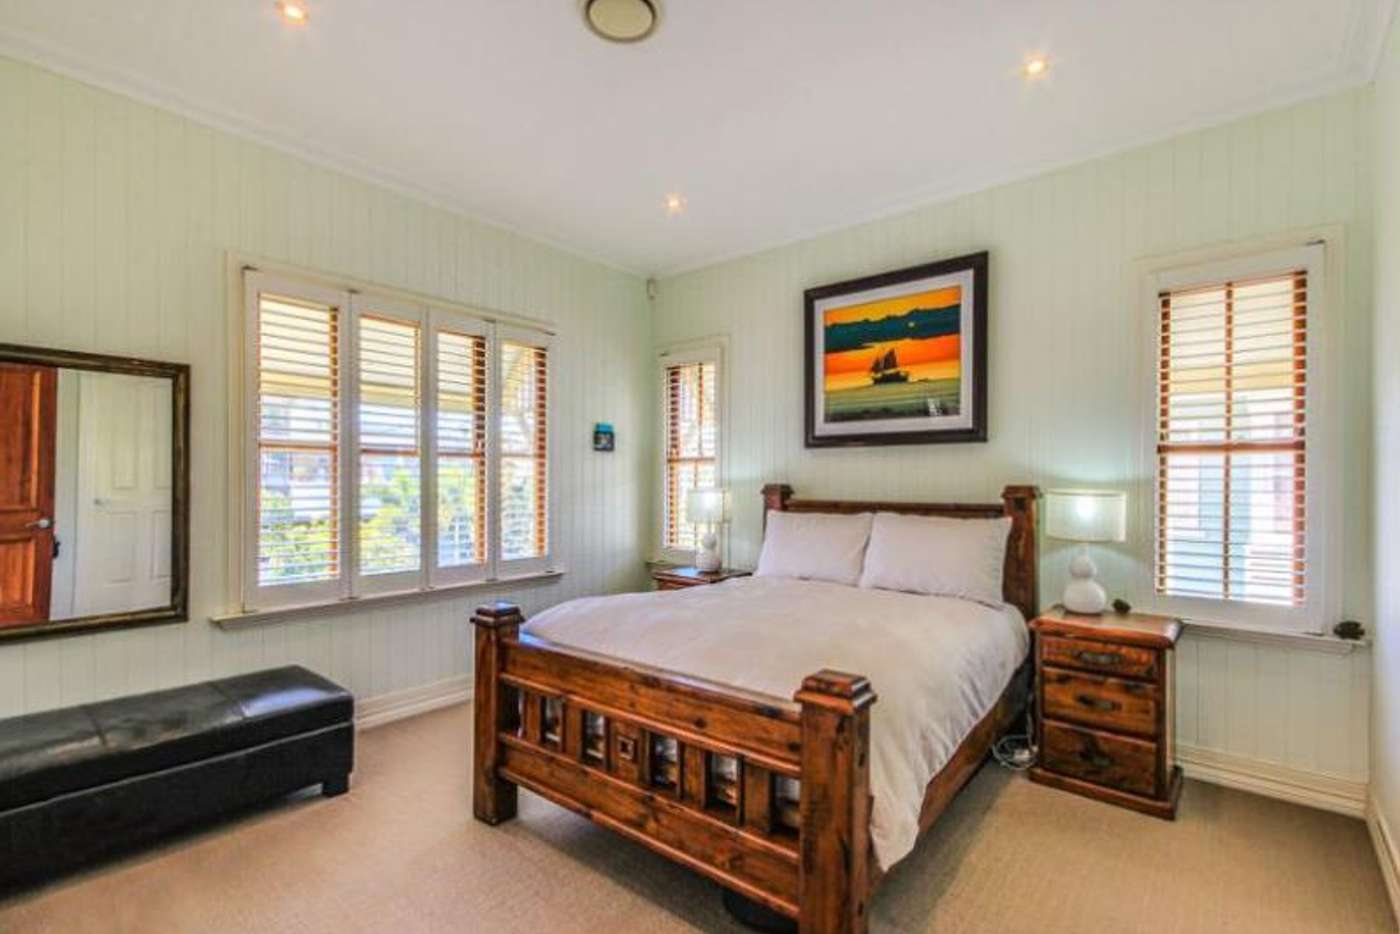 Fifth view of Homely house listing, 16 Lloyd Street, Alderley QLD 4051